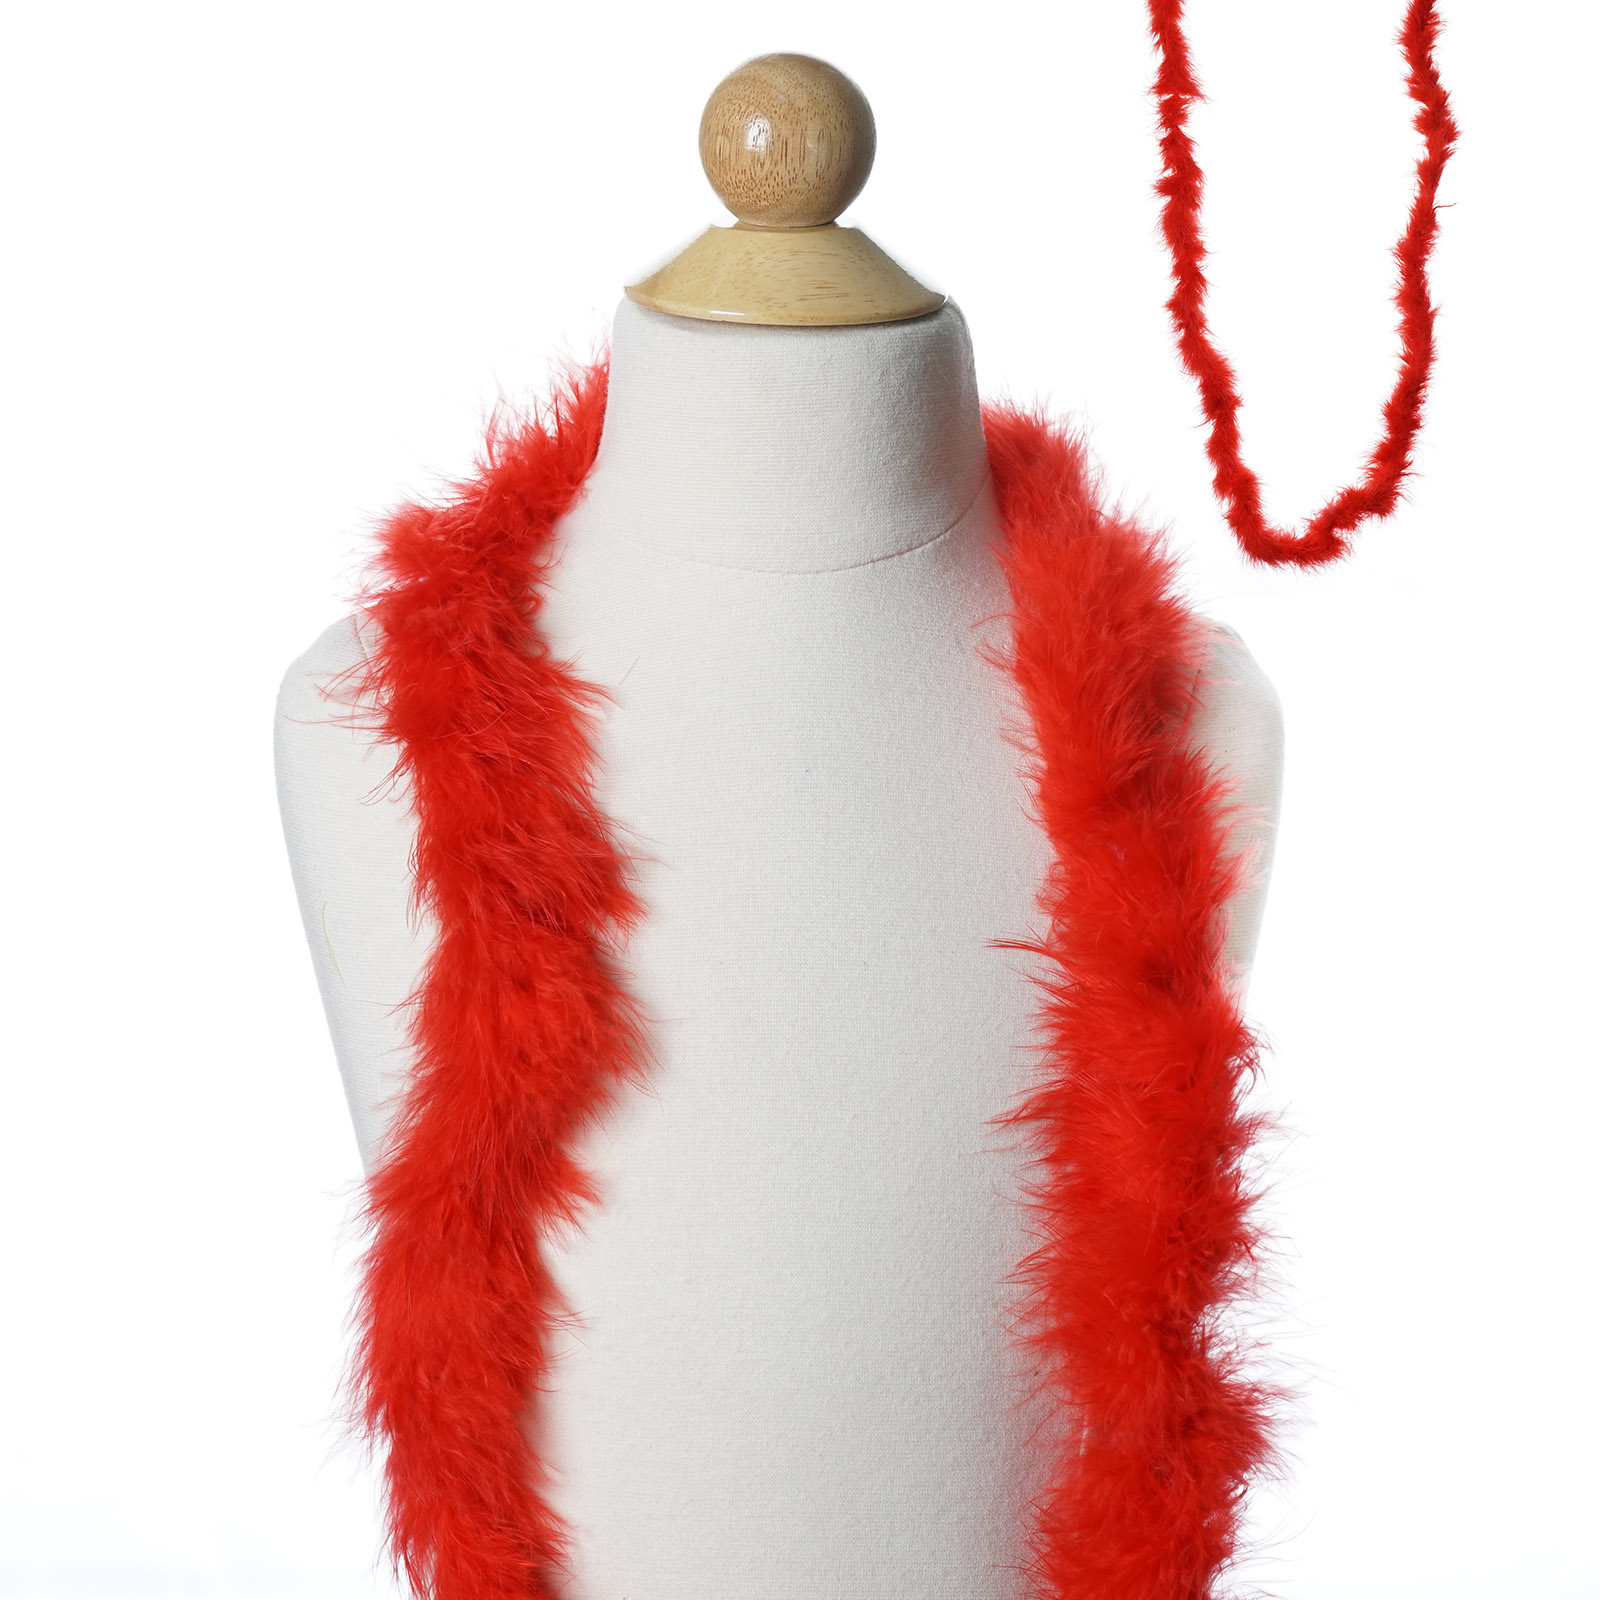 Efavormart 2 Yards Deluxe Marabou Ostrich Feather Boas Premium Turkey Flat Chandelle Boa for Arts and Crafts